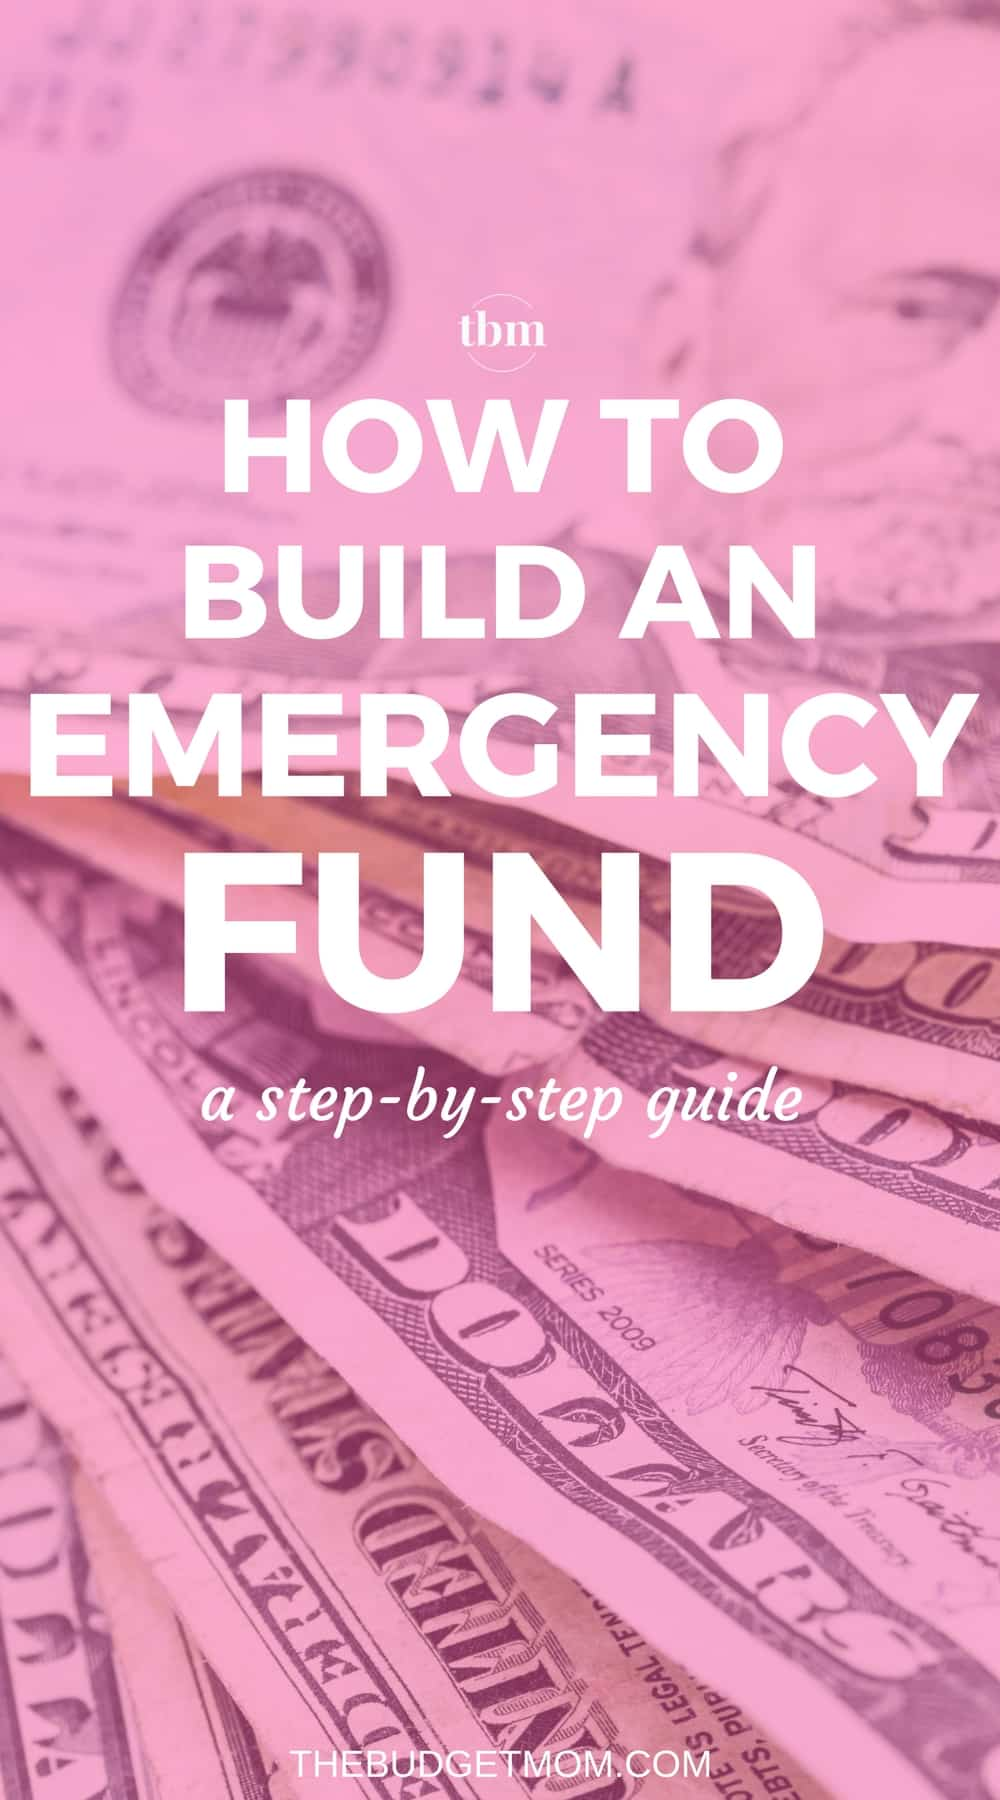 One of the most important categories in your budget is an emergency fund. Saving for life's unexpected expenses is one of the most important things you can do if you are trying to pay off debt or are living paycheck-to-paycheck. Here is a step-by-step guide on how to create and build an emergency fund that you can actually stick to.